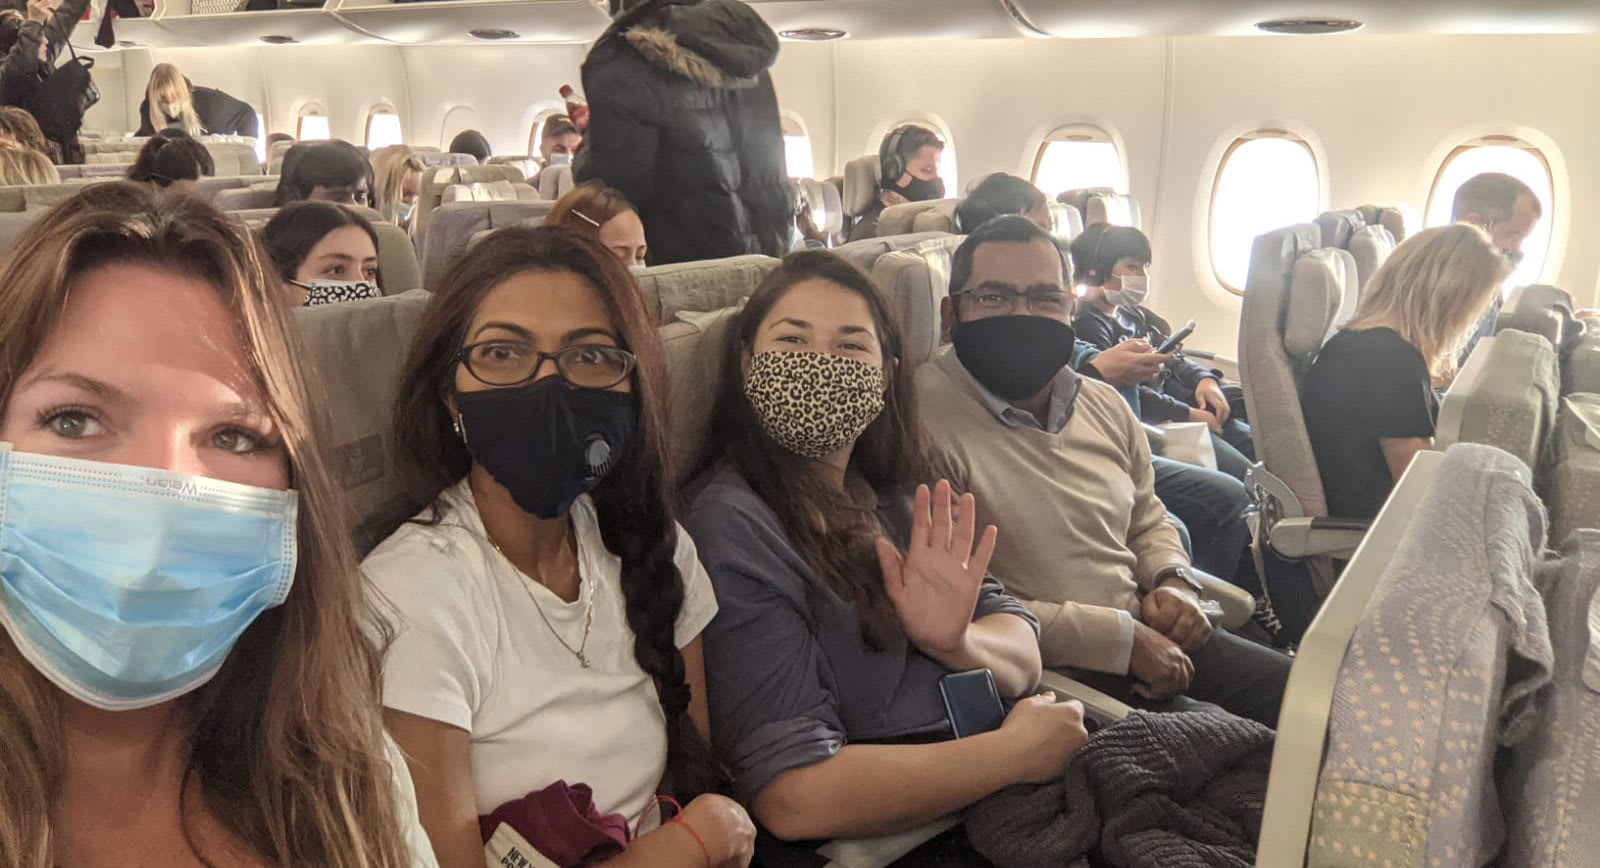 People sat on a plane wearing masks